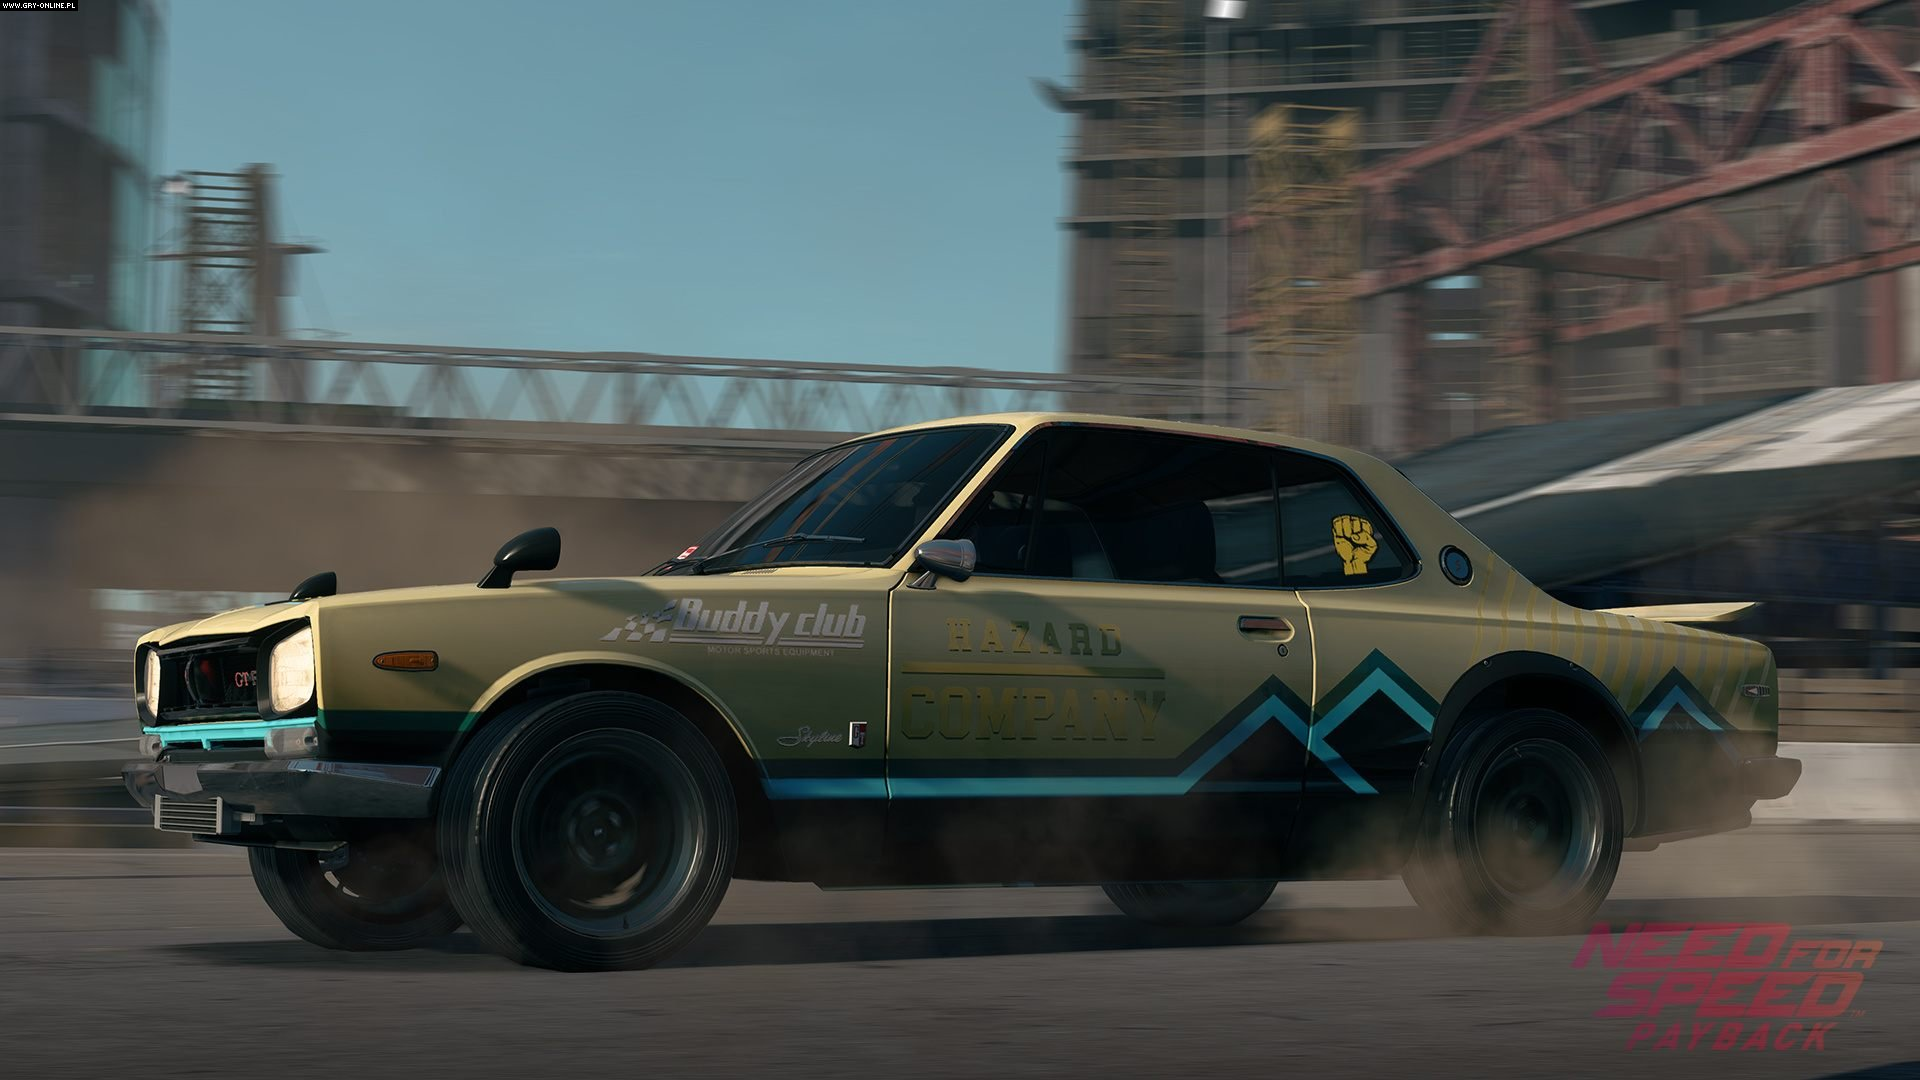 Need for Speed: Payback PC, PS4, XONE Games Image 6/43, Ghost Games, Electronic Arts Inc.